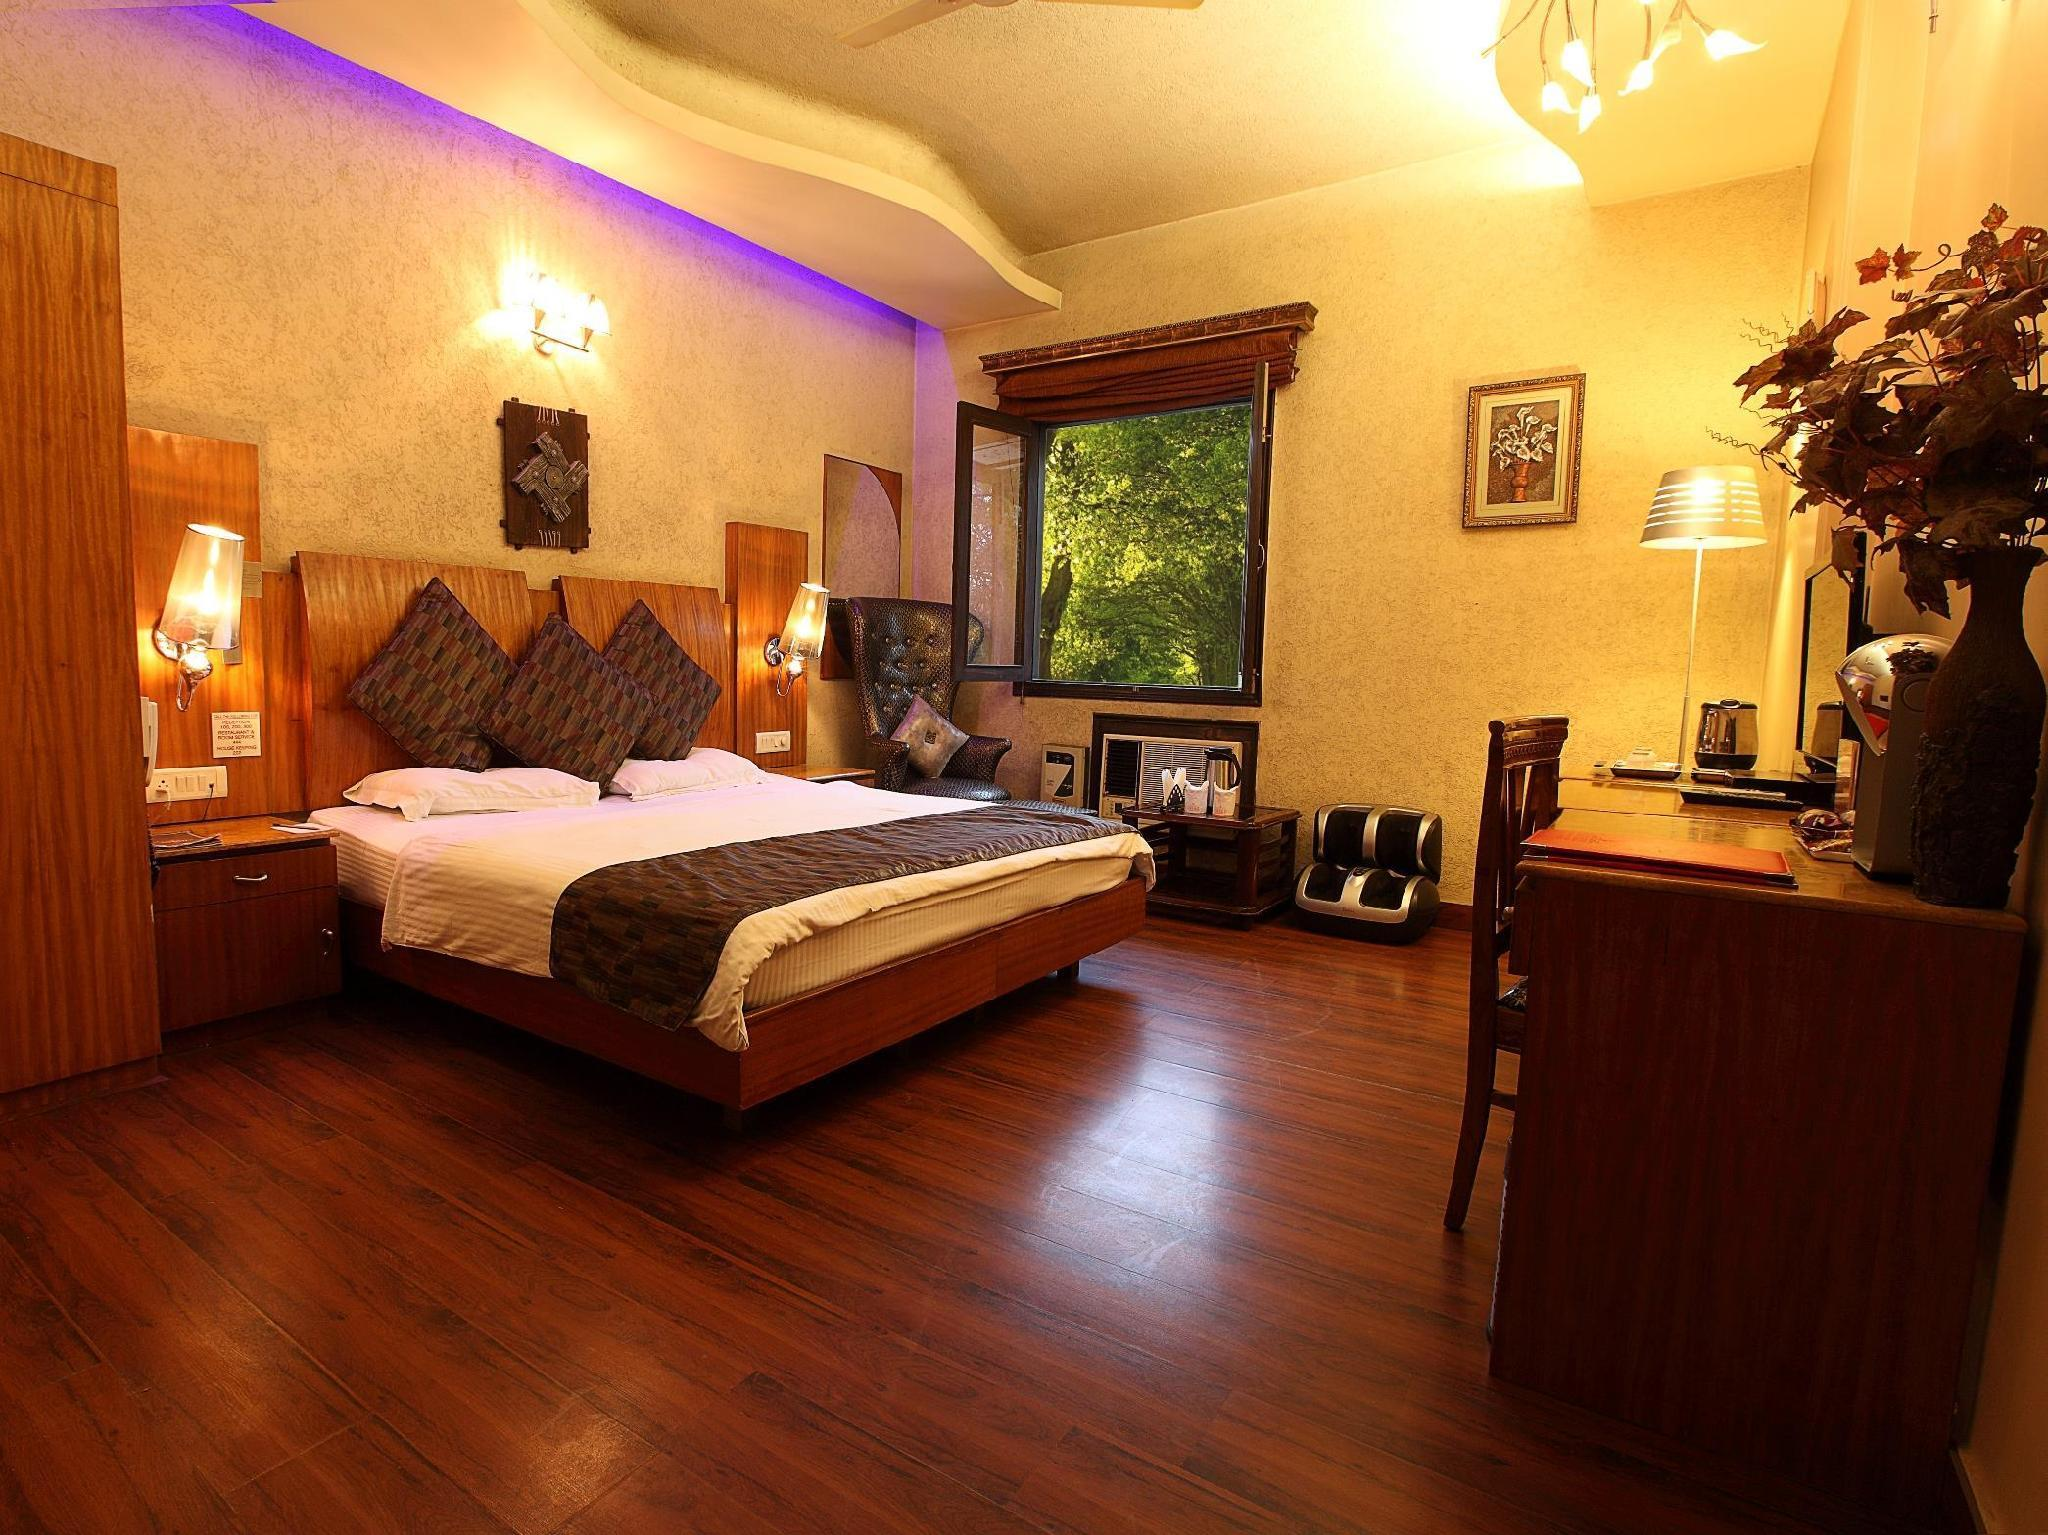 Kamar Superb (Superb Room)